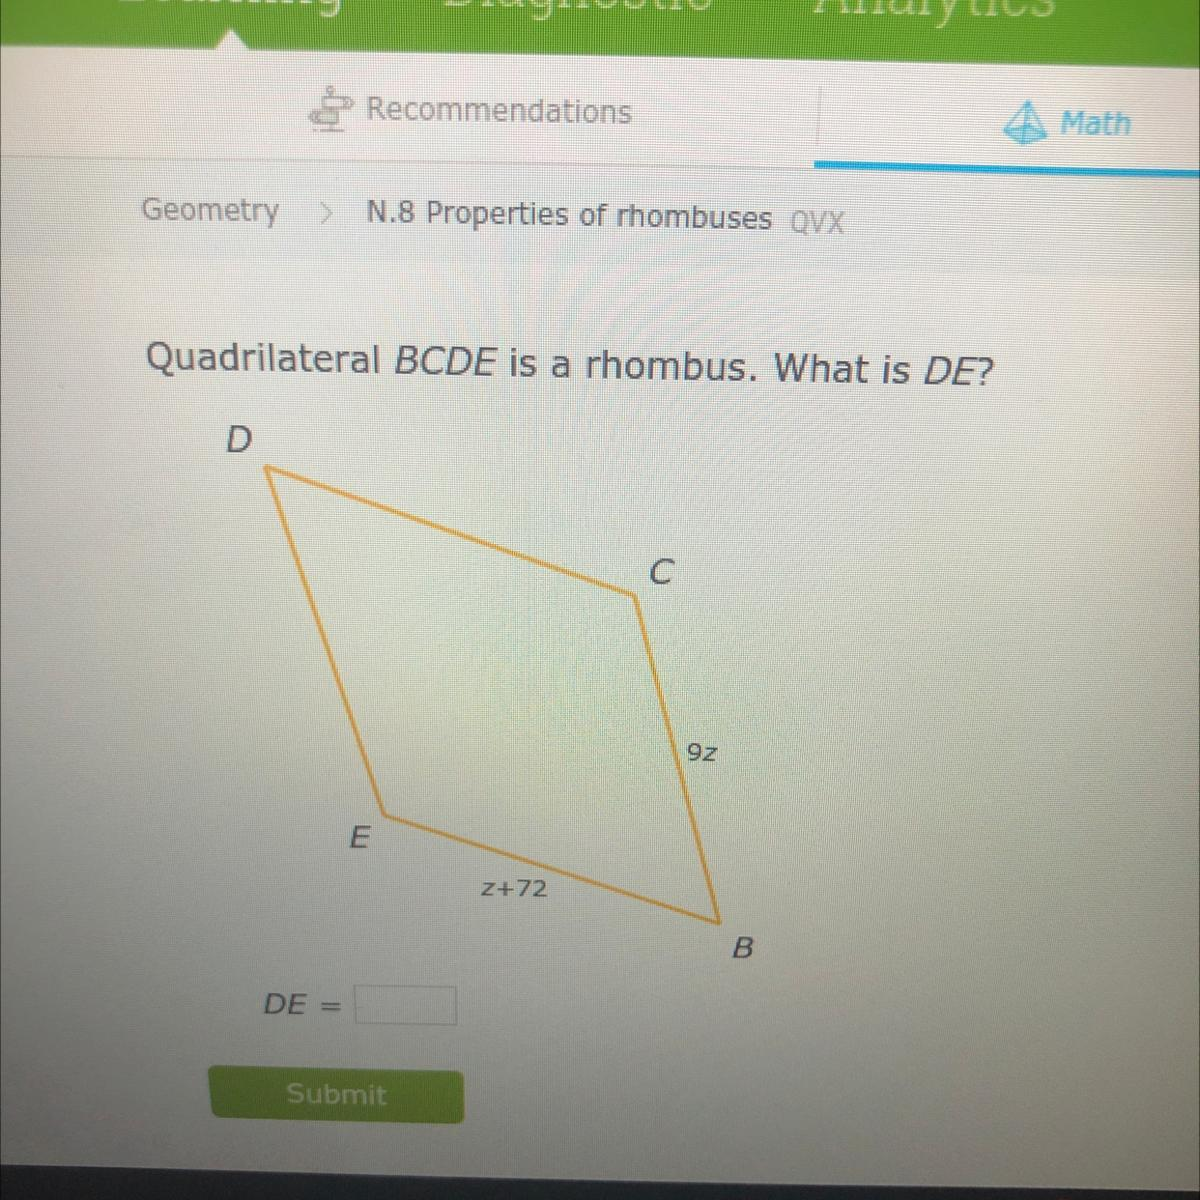 [Solved] If BCDE is congruent to OPQR , then DE is